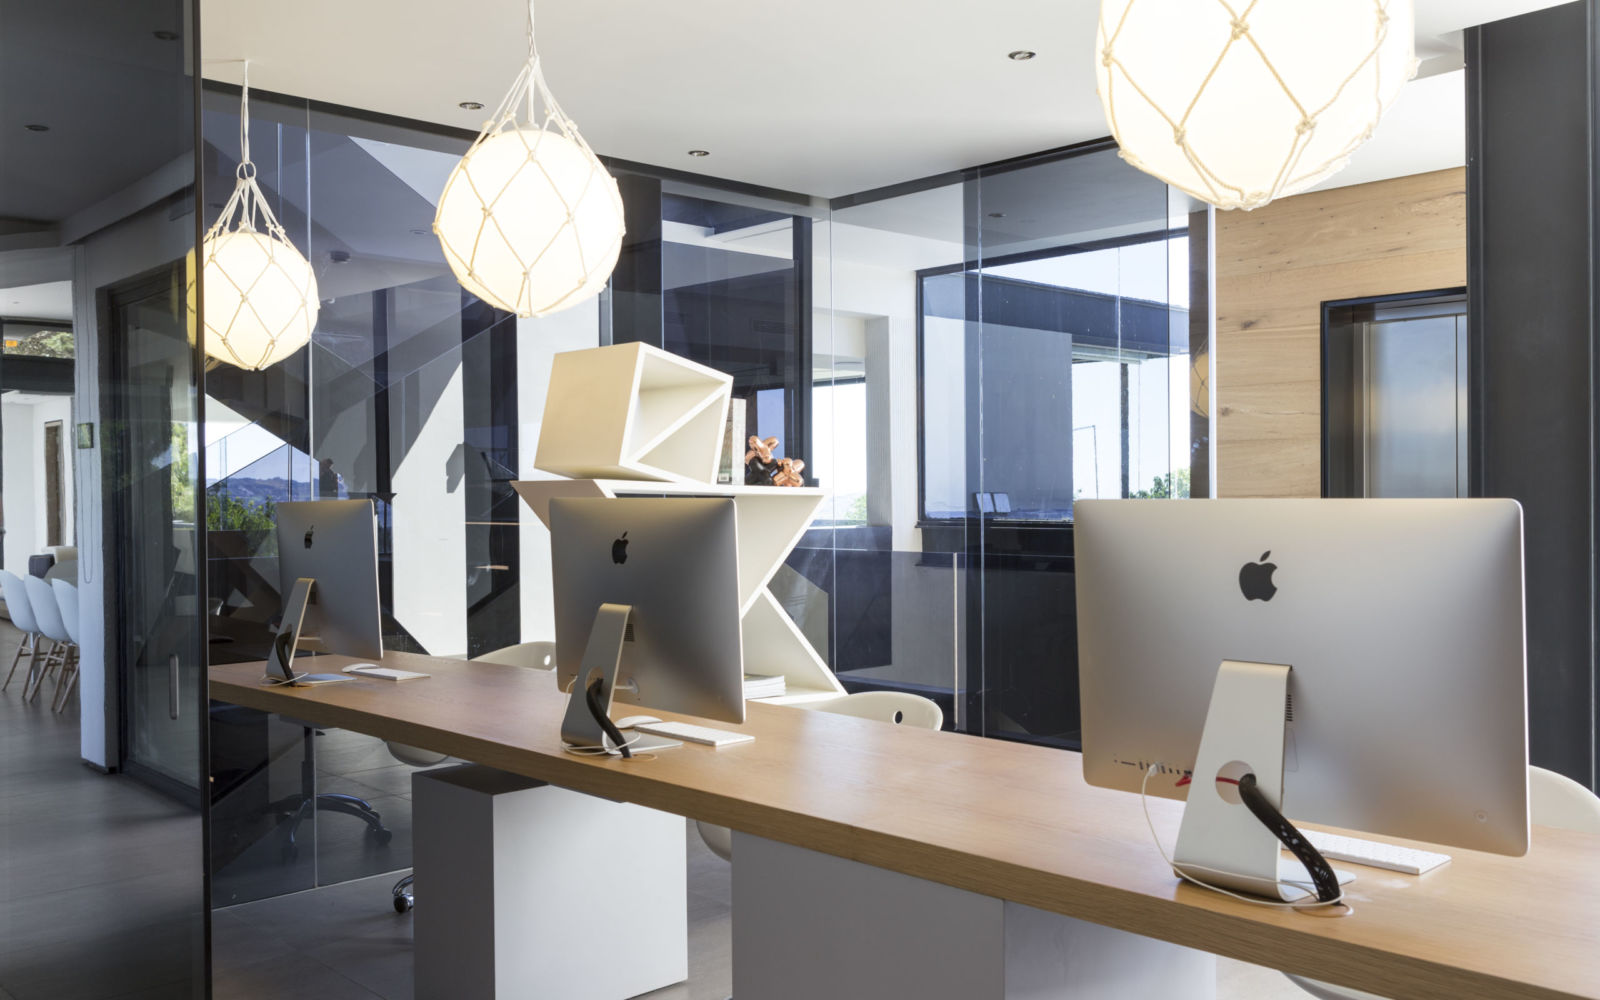 Design of the home office